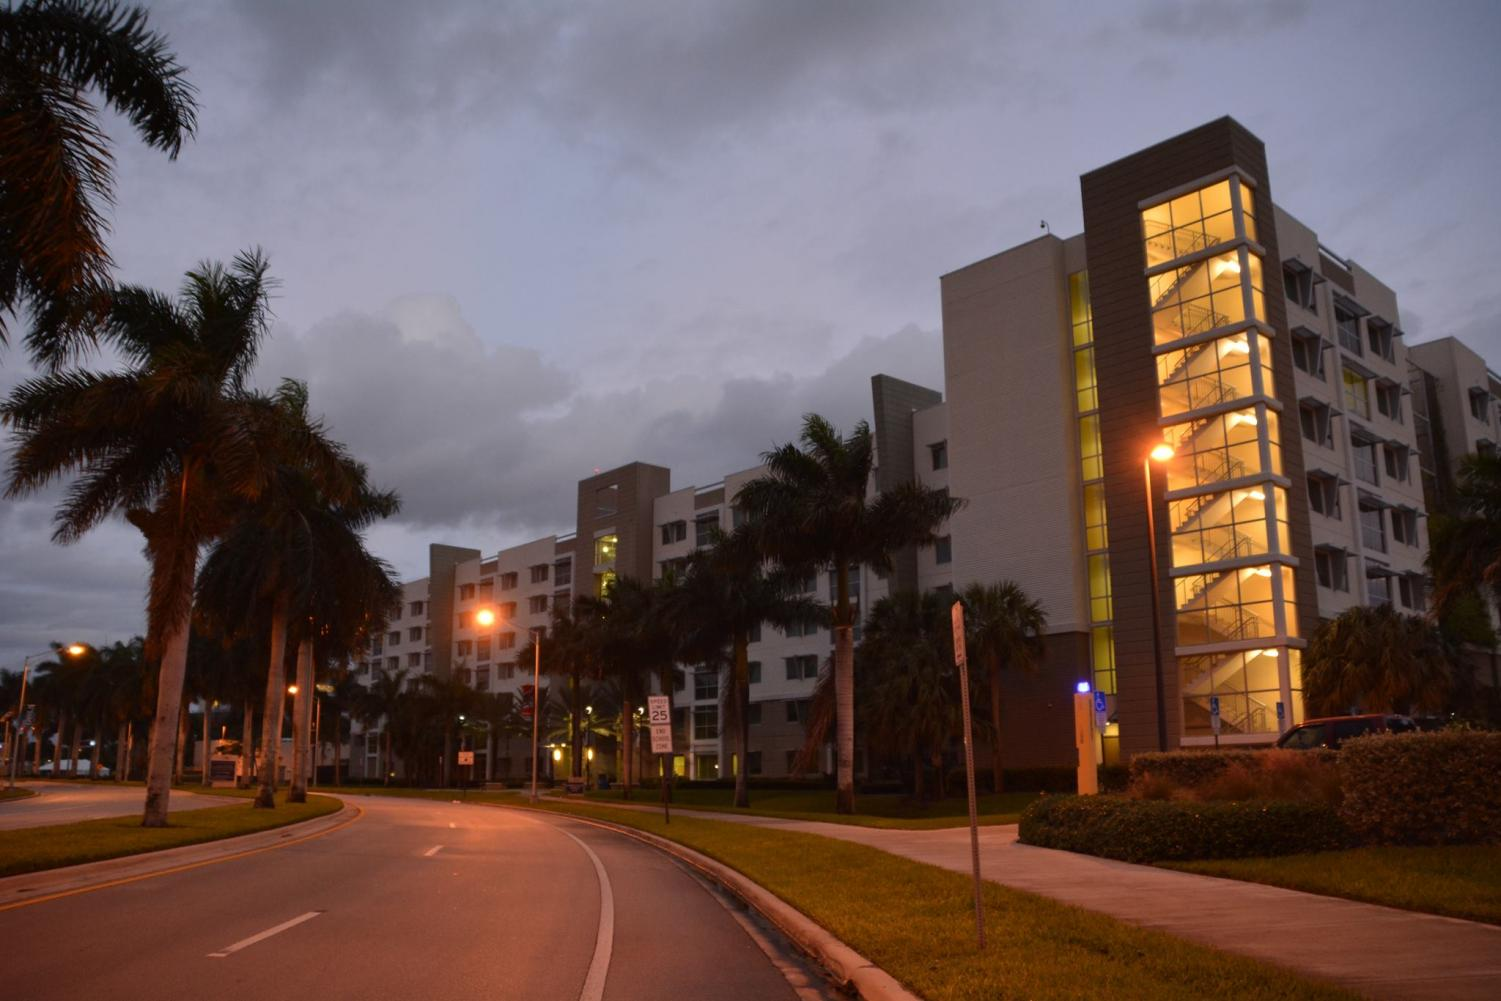 Innovation Village South, one of the dorms at FAU. Photo courtesy of FAU Housing's Facebook.